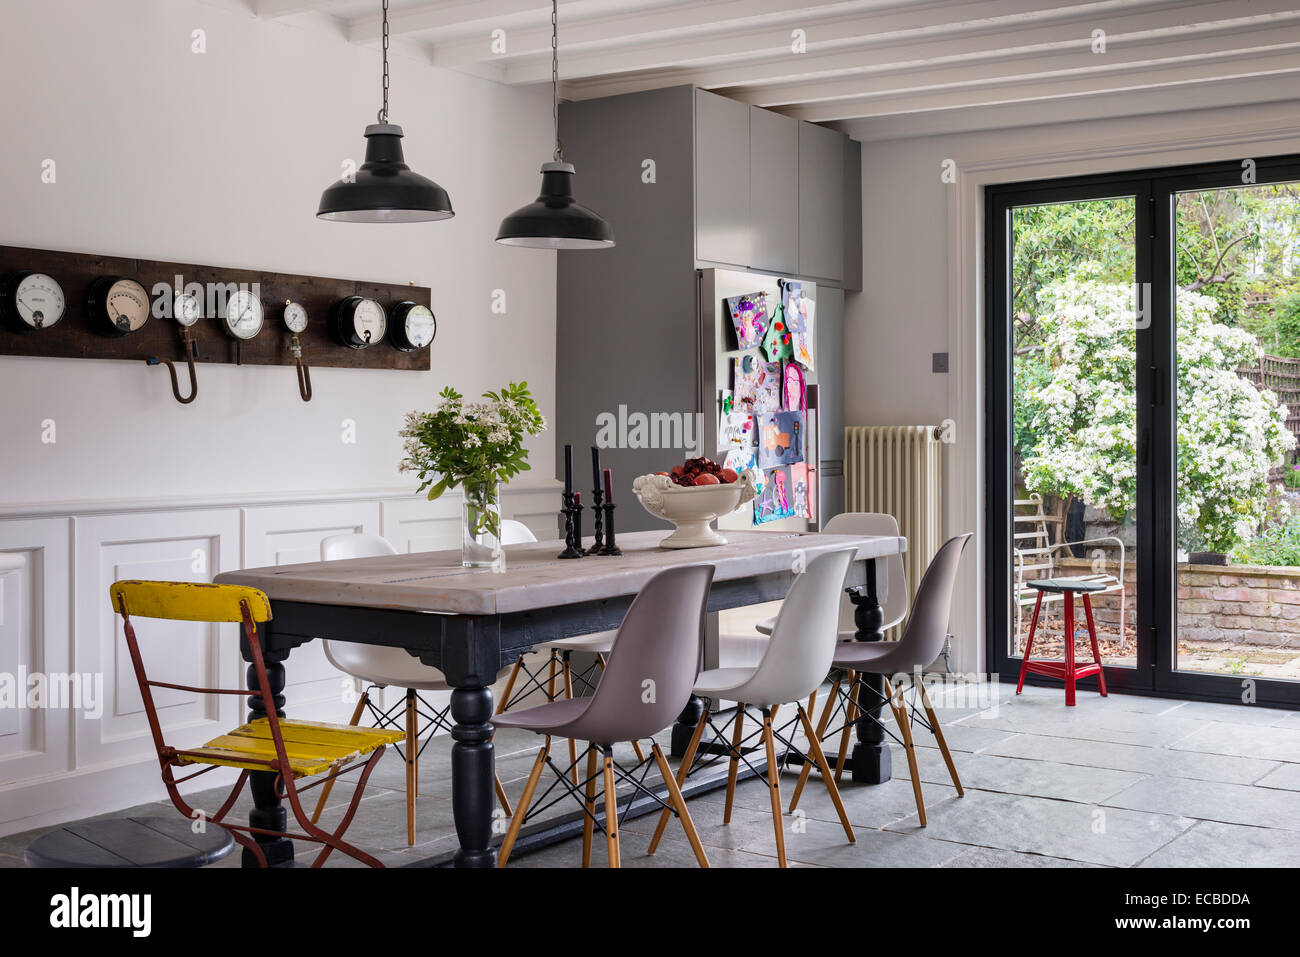 Eames DSW Chairs Around Farmhouse Table In Kitchen With Limestone Flooring  And Pendant Lights